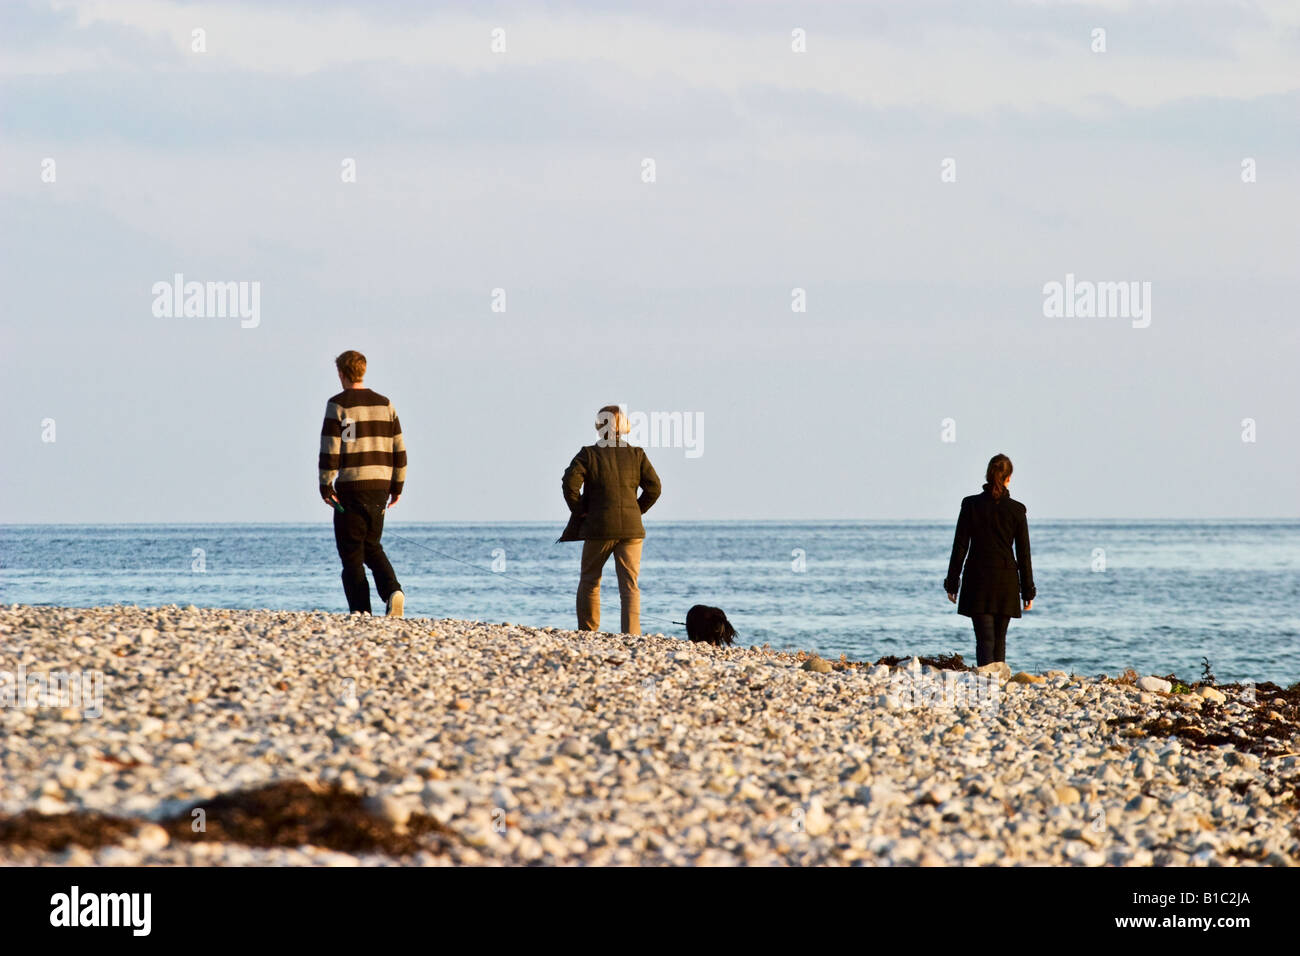 Walking on the beach - Stock Image